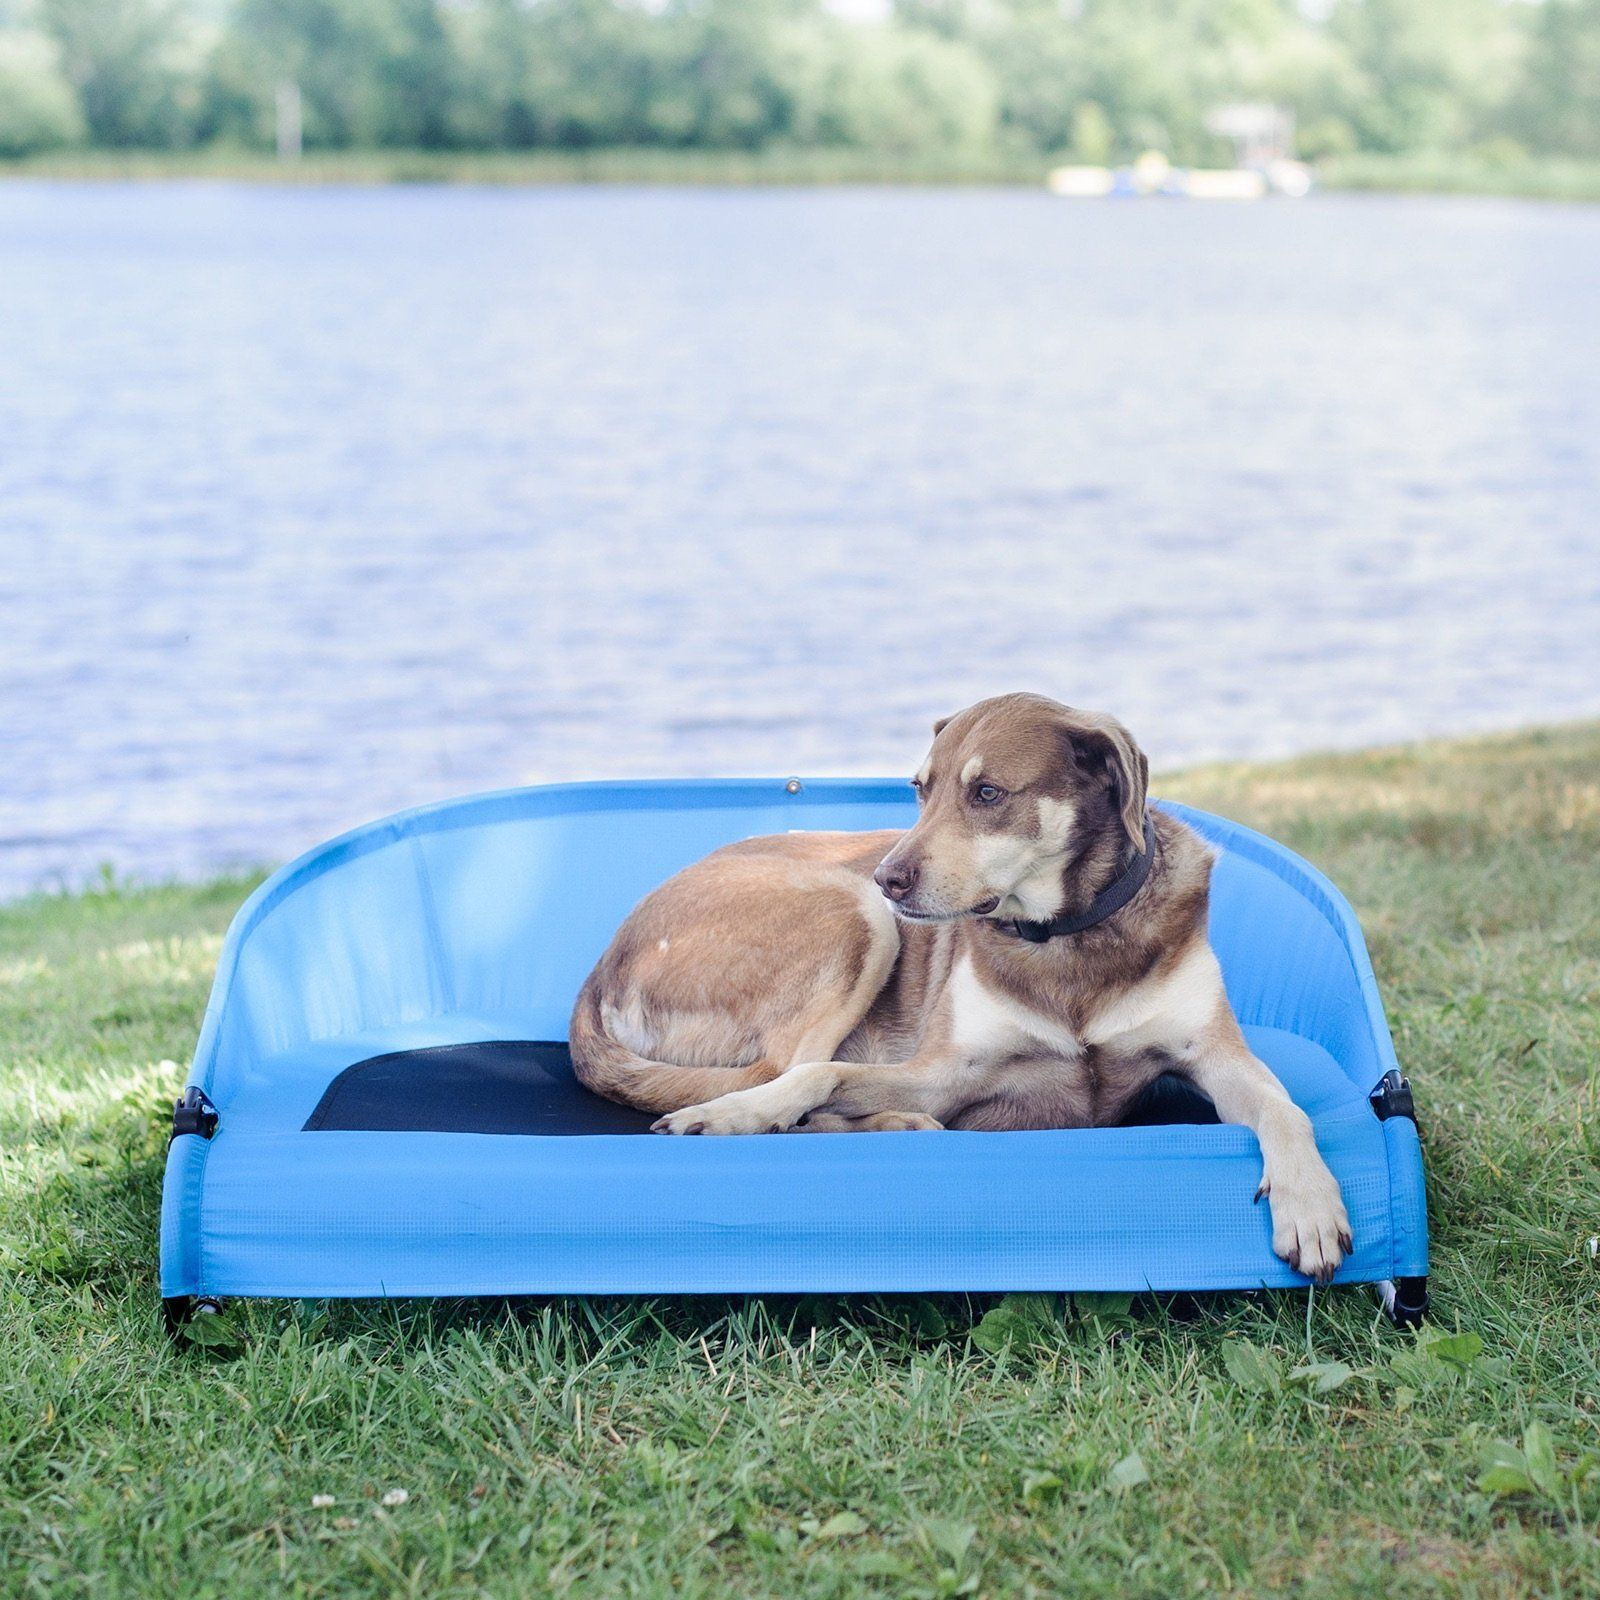 Cool Air Cot Raised Pet Bed From Gen7pets Outdoor Dog Bed